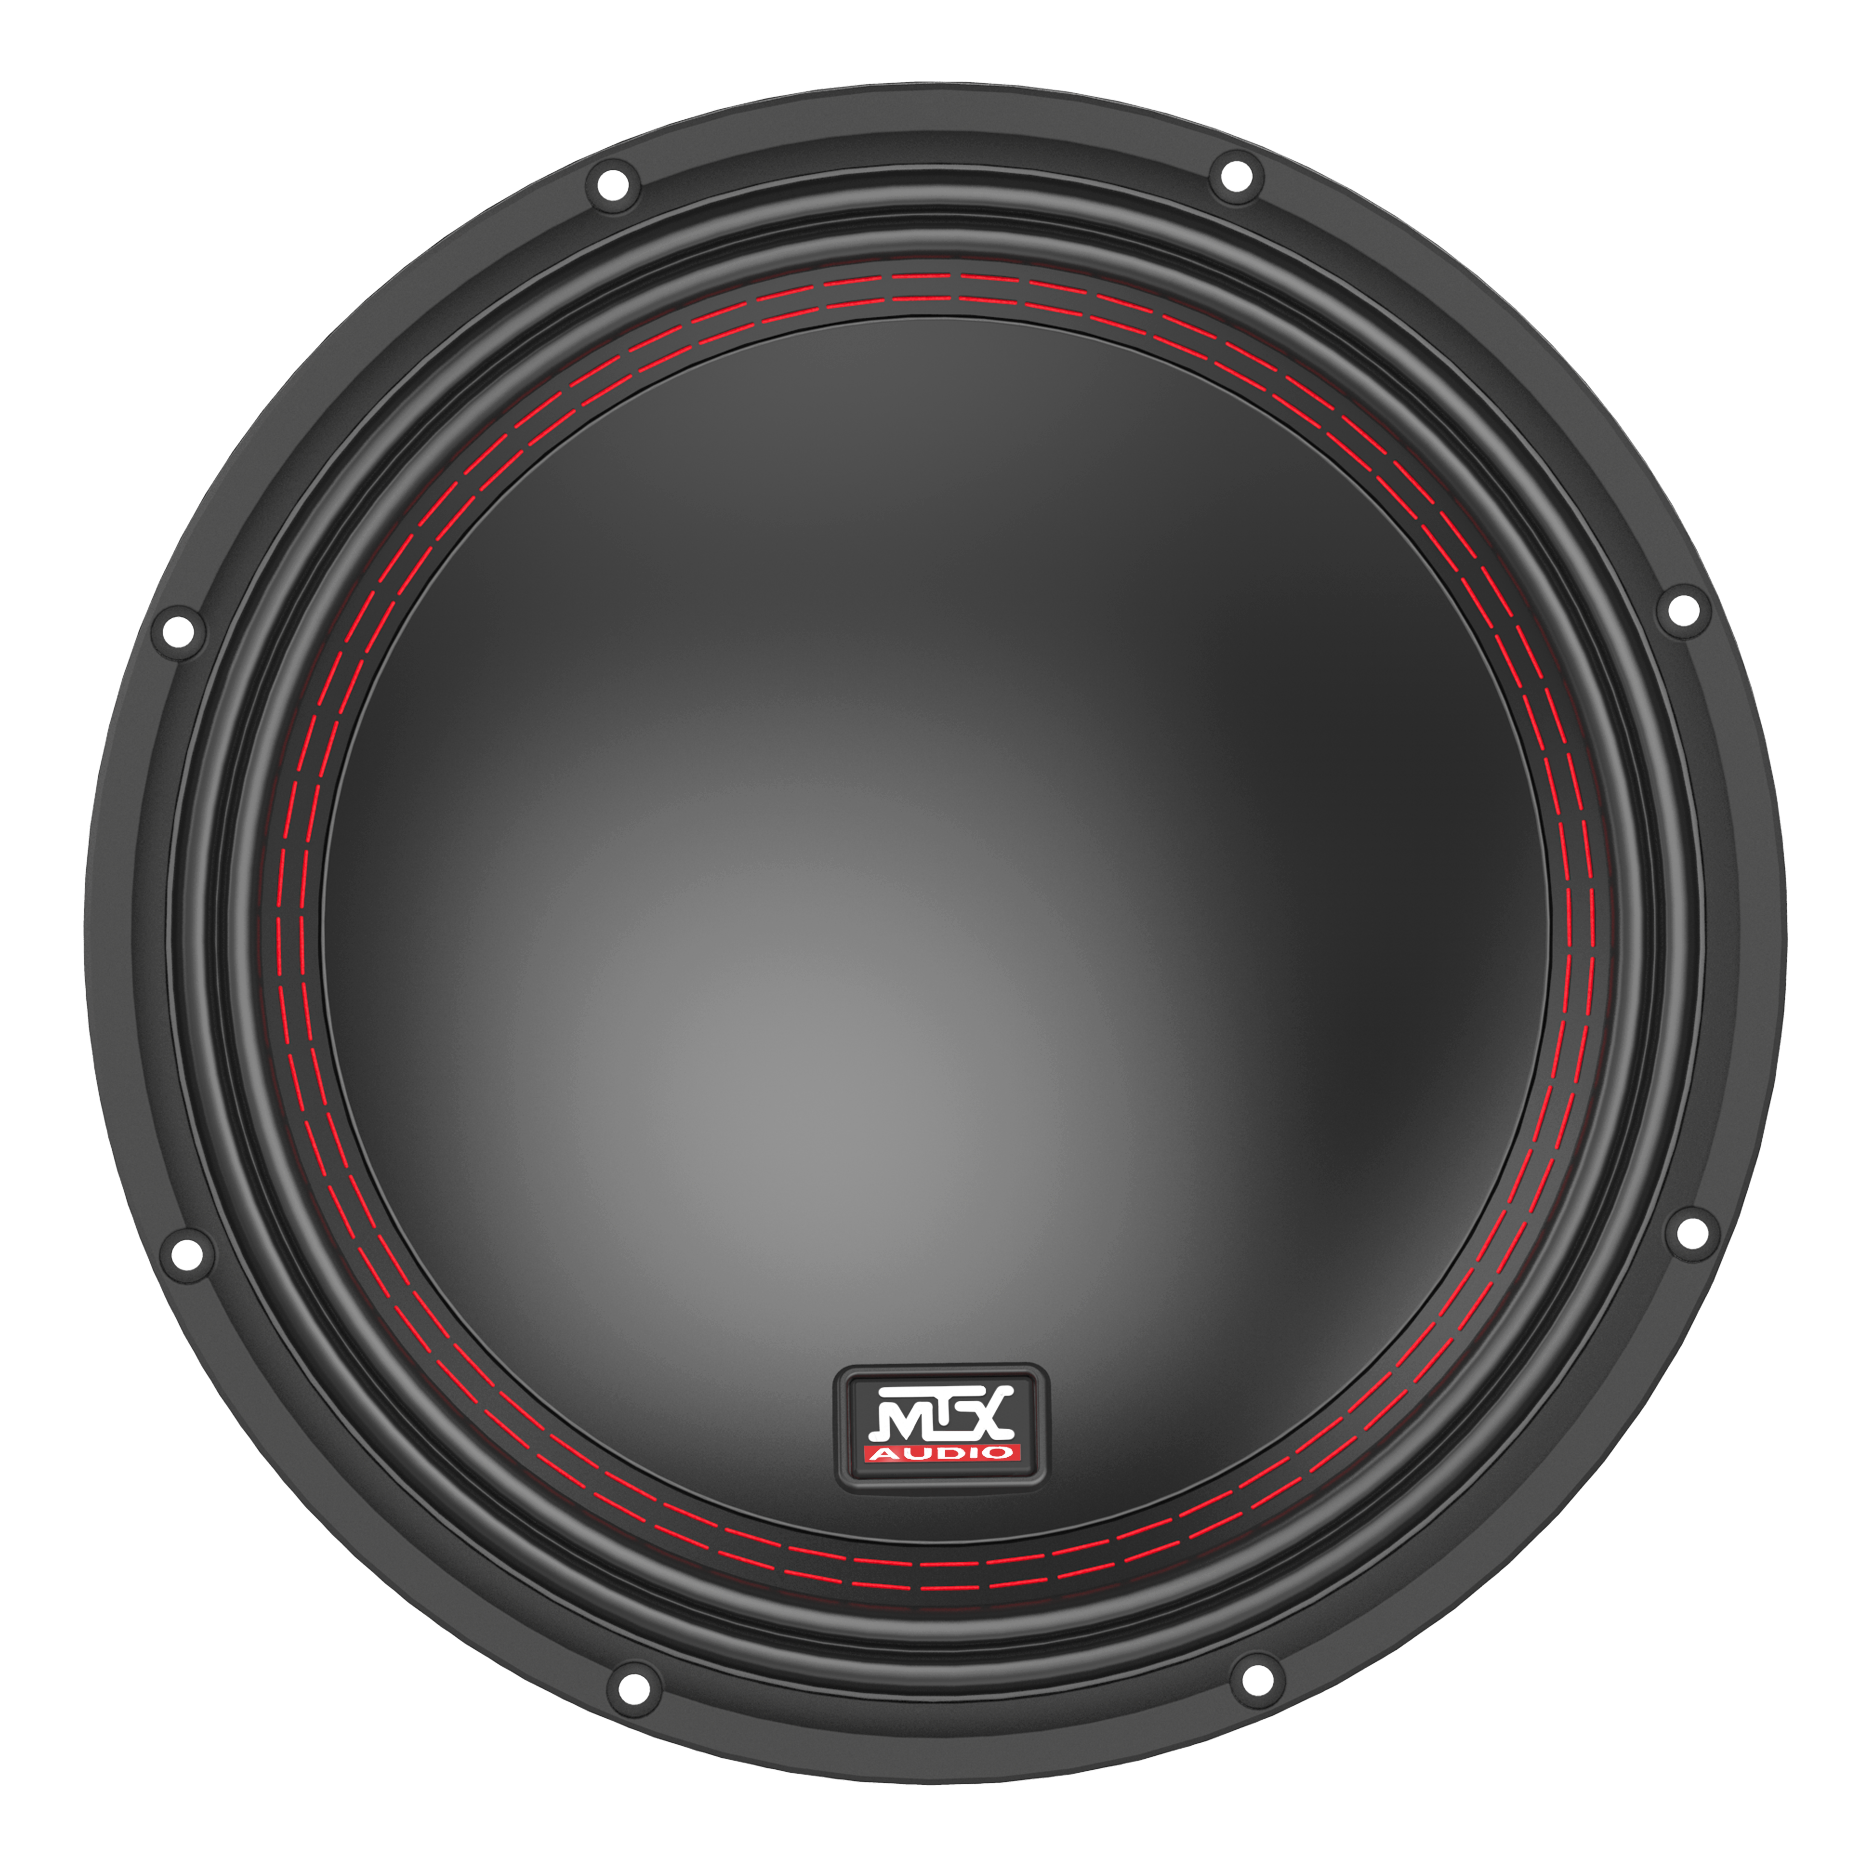 Search Mtx Audio Serious About Sound Dual 10 Inch Jl Subwoofer Inverted Apex Surround Creates Higher Volume Displacement Spl And Less Distortion Progressive Suspension Controls Excursion At High Power Lowering